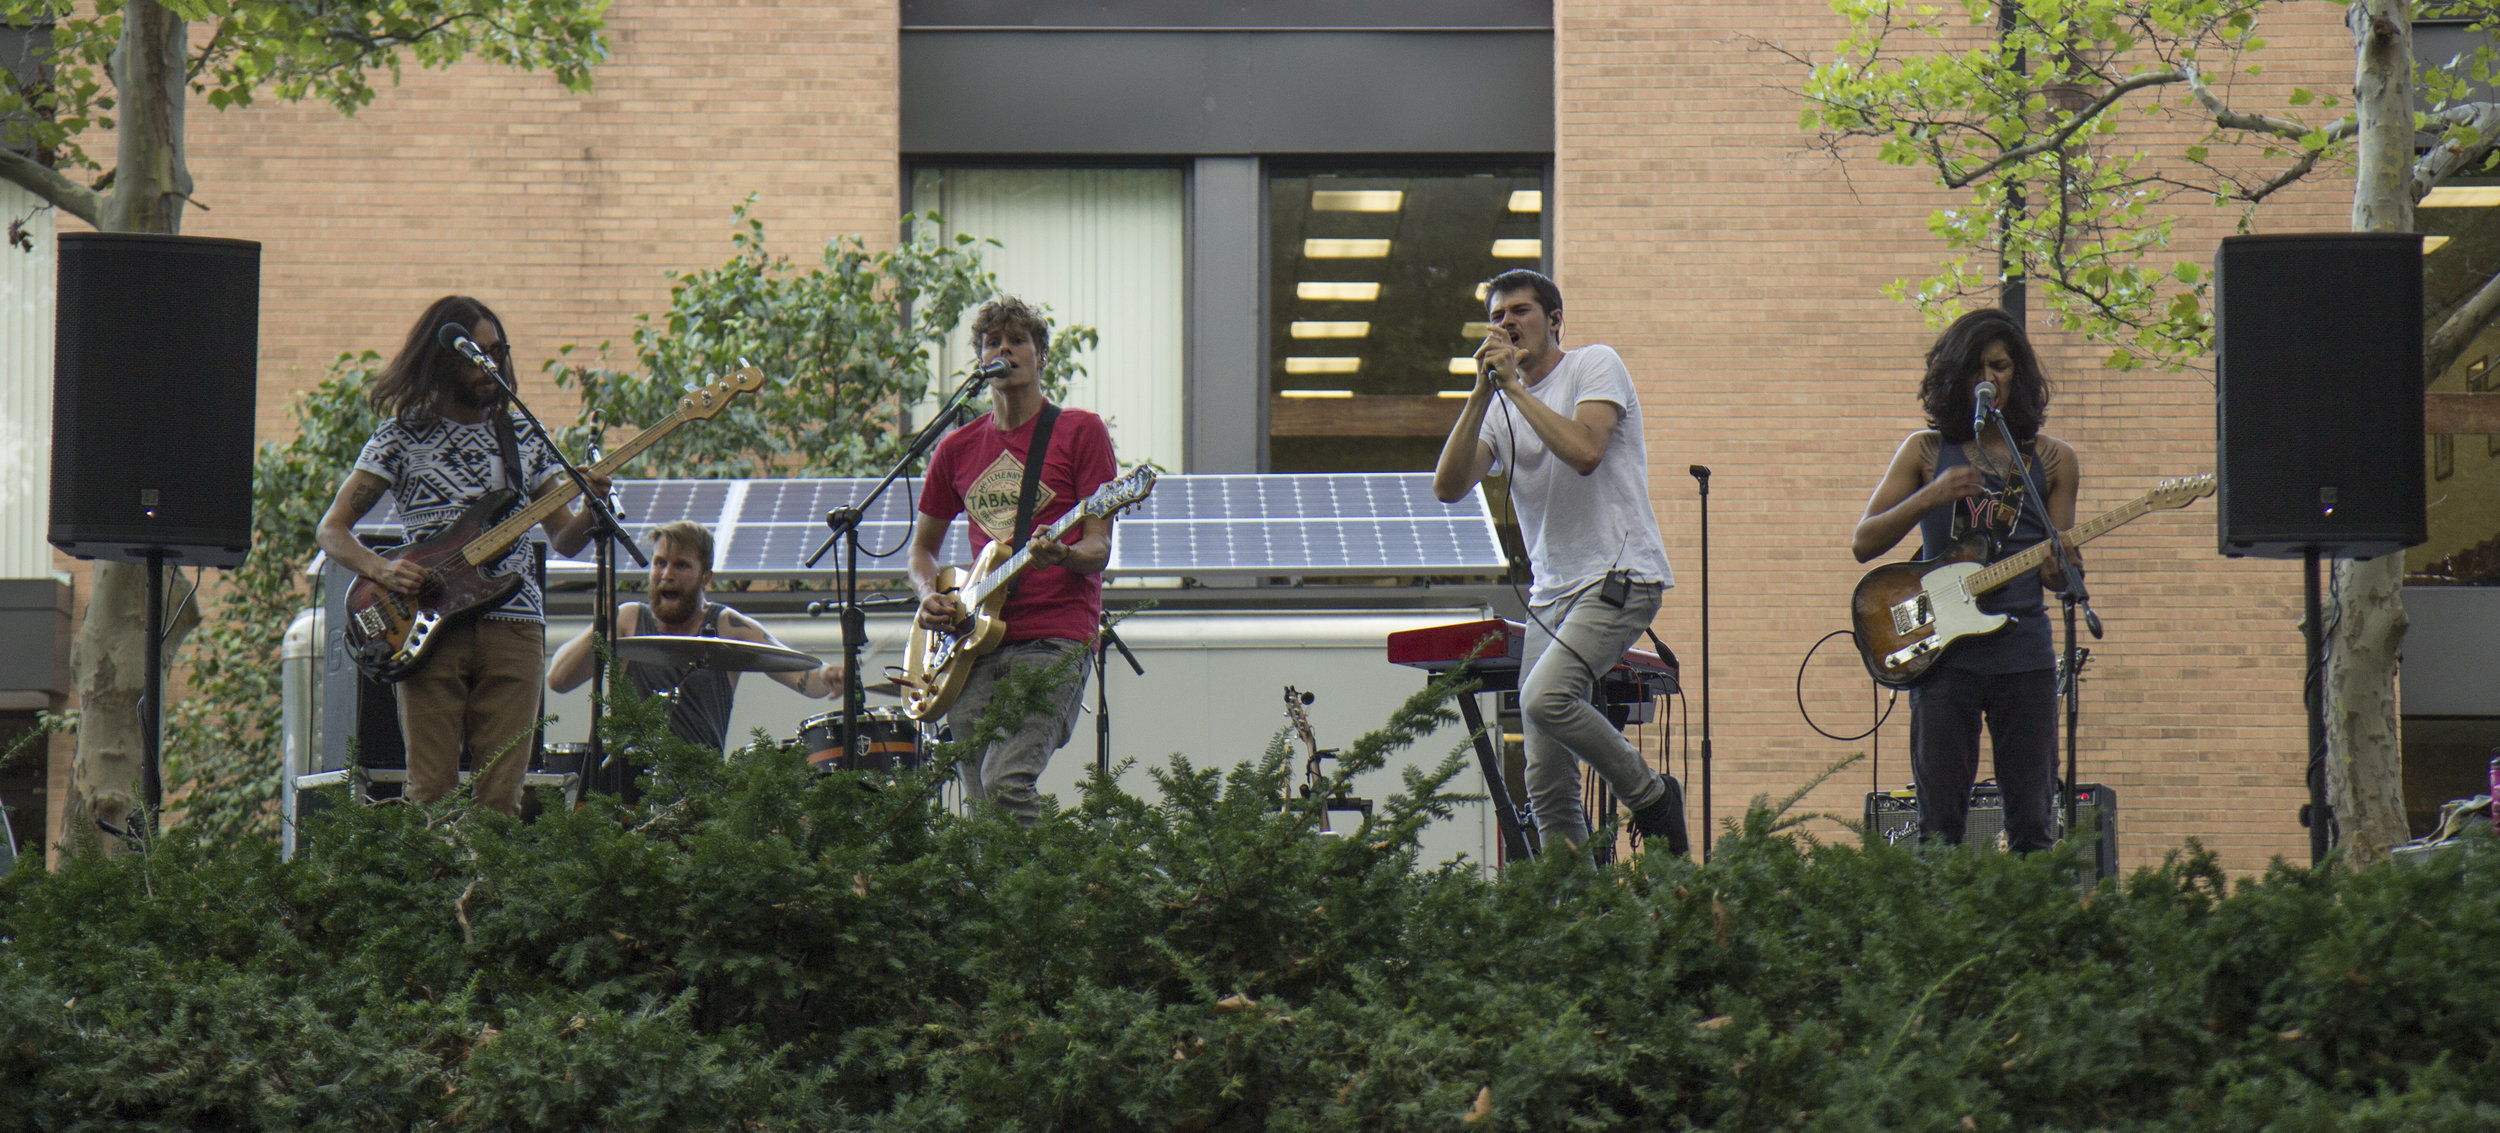 Solar Stage by Jim Stickel at YSU.jpg